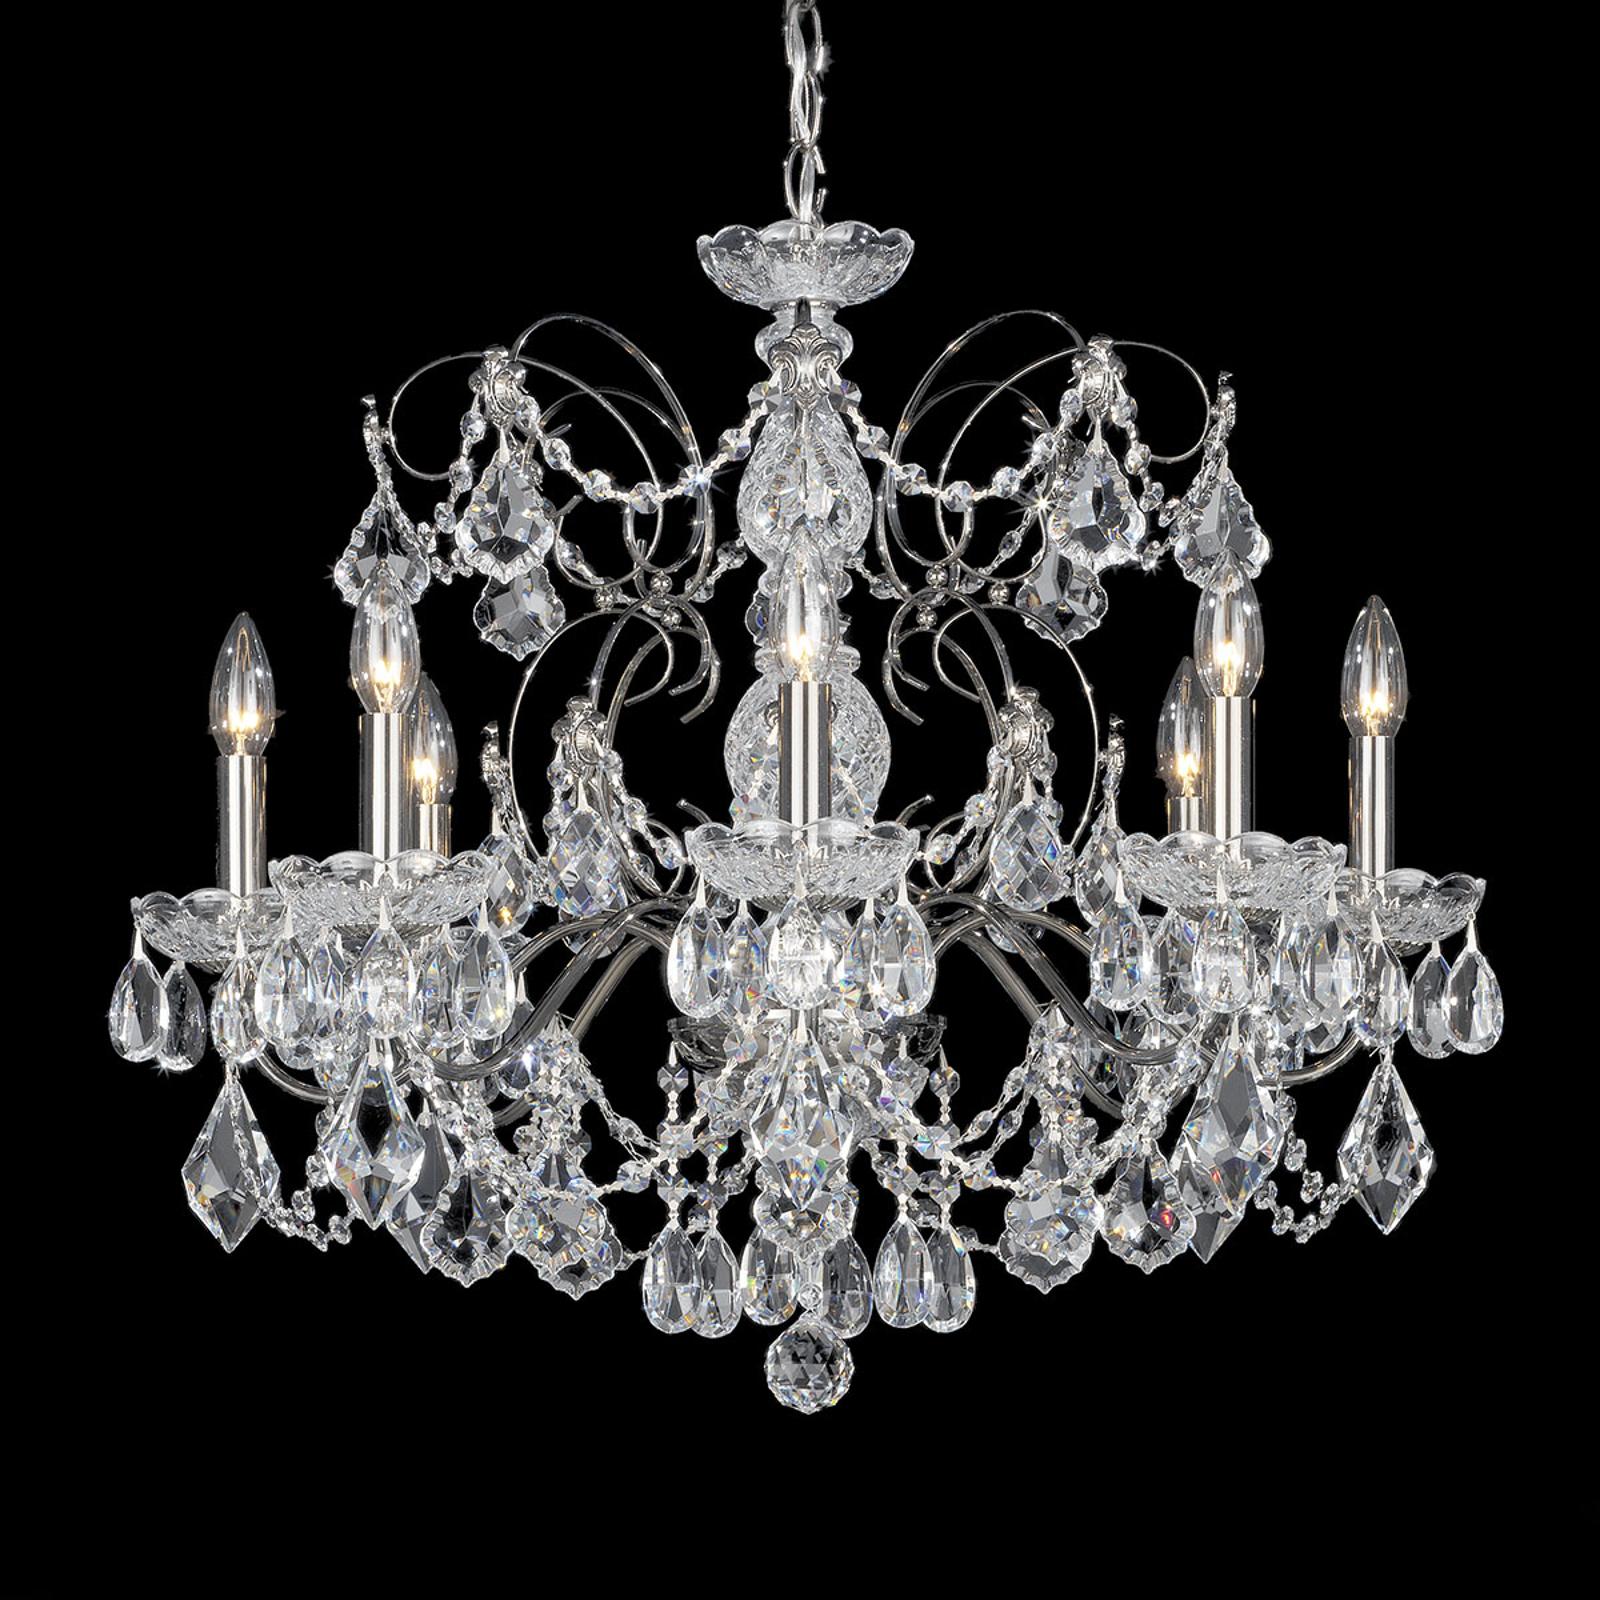 Schonbek Century Crystal Chandelier 8 Bulb Black Lights Co Uk